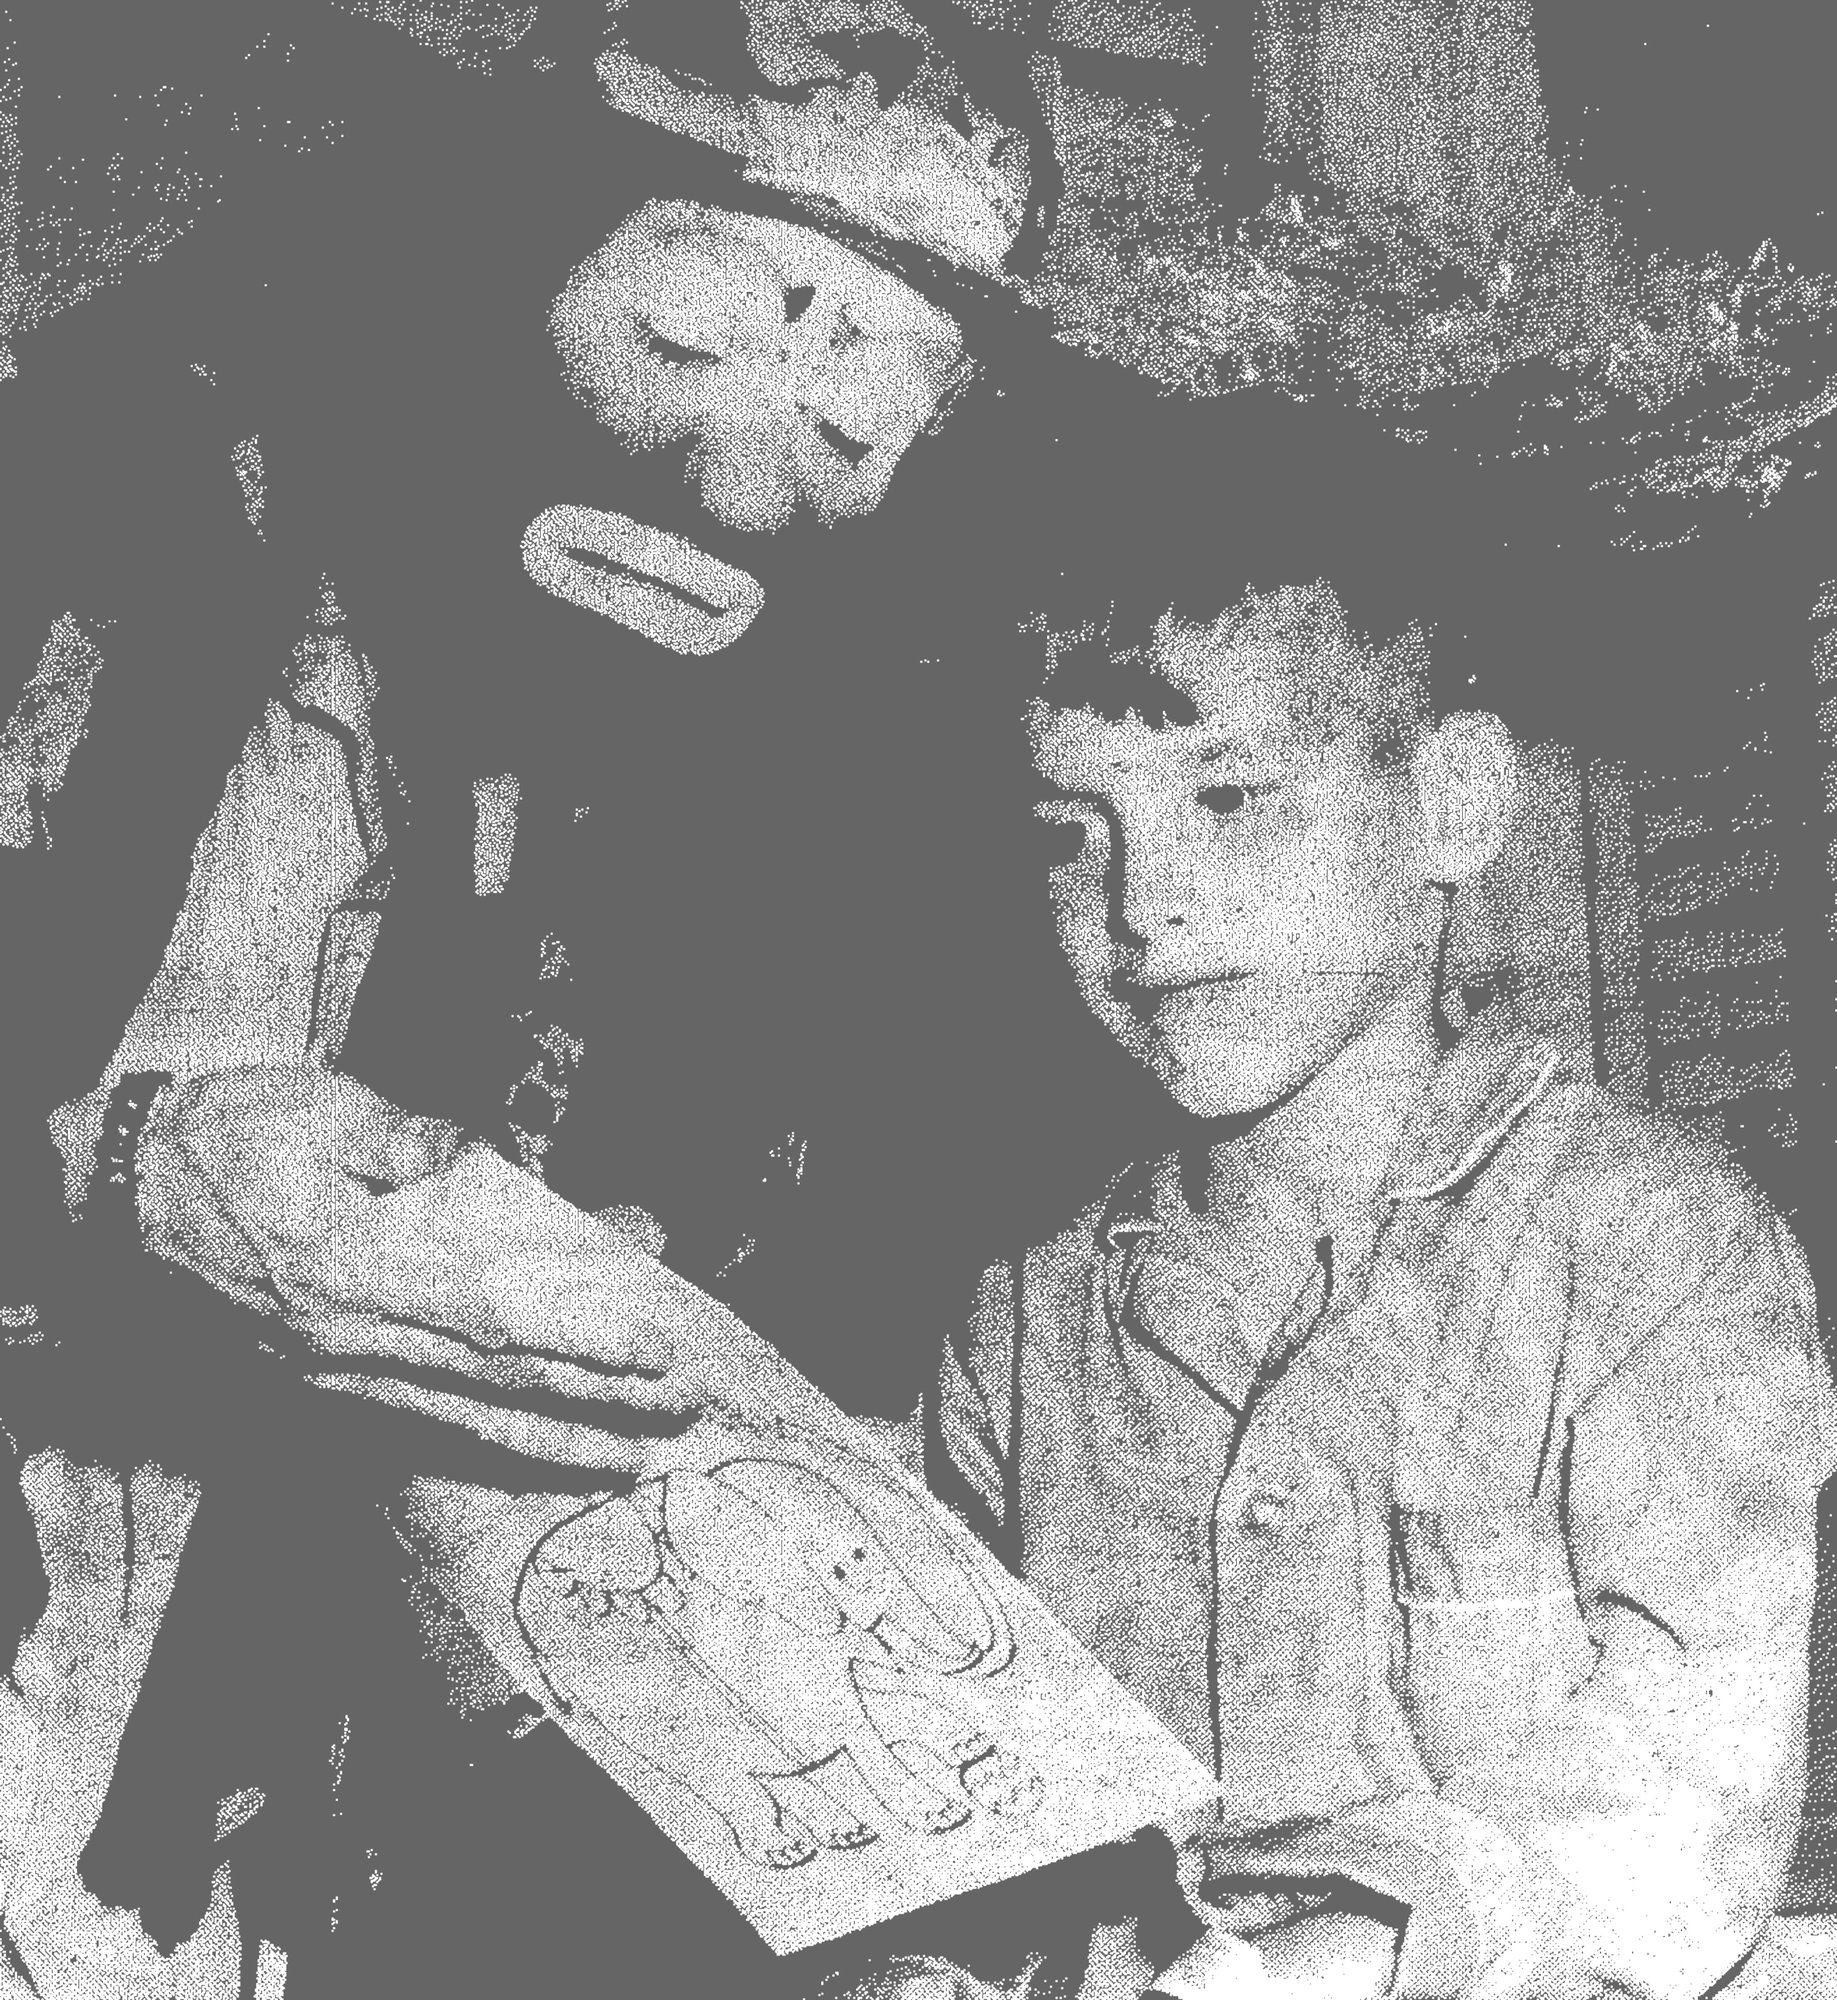 1969 - Well-known clown Emmett Kelly visited the children's ward at Tuomey Hospital to give out coloring books and entertain the children. Here he talks with Richard Elmore, age 7.